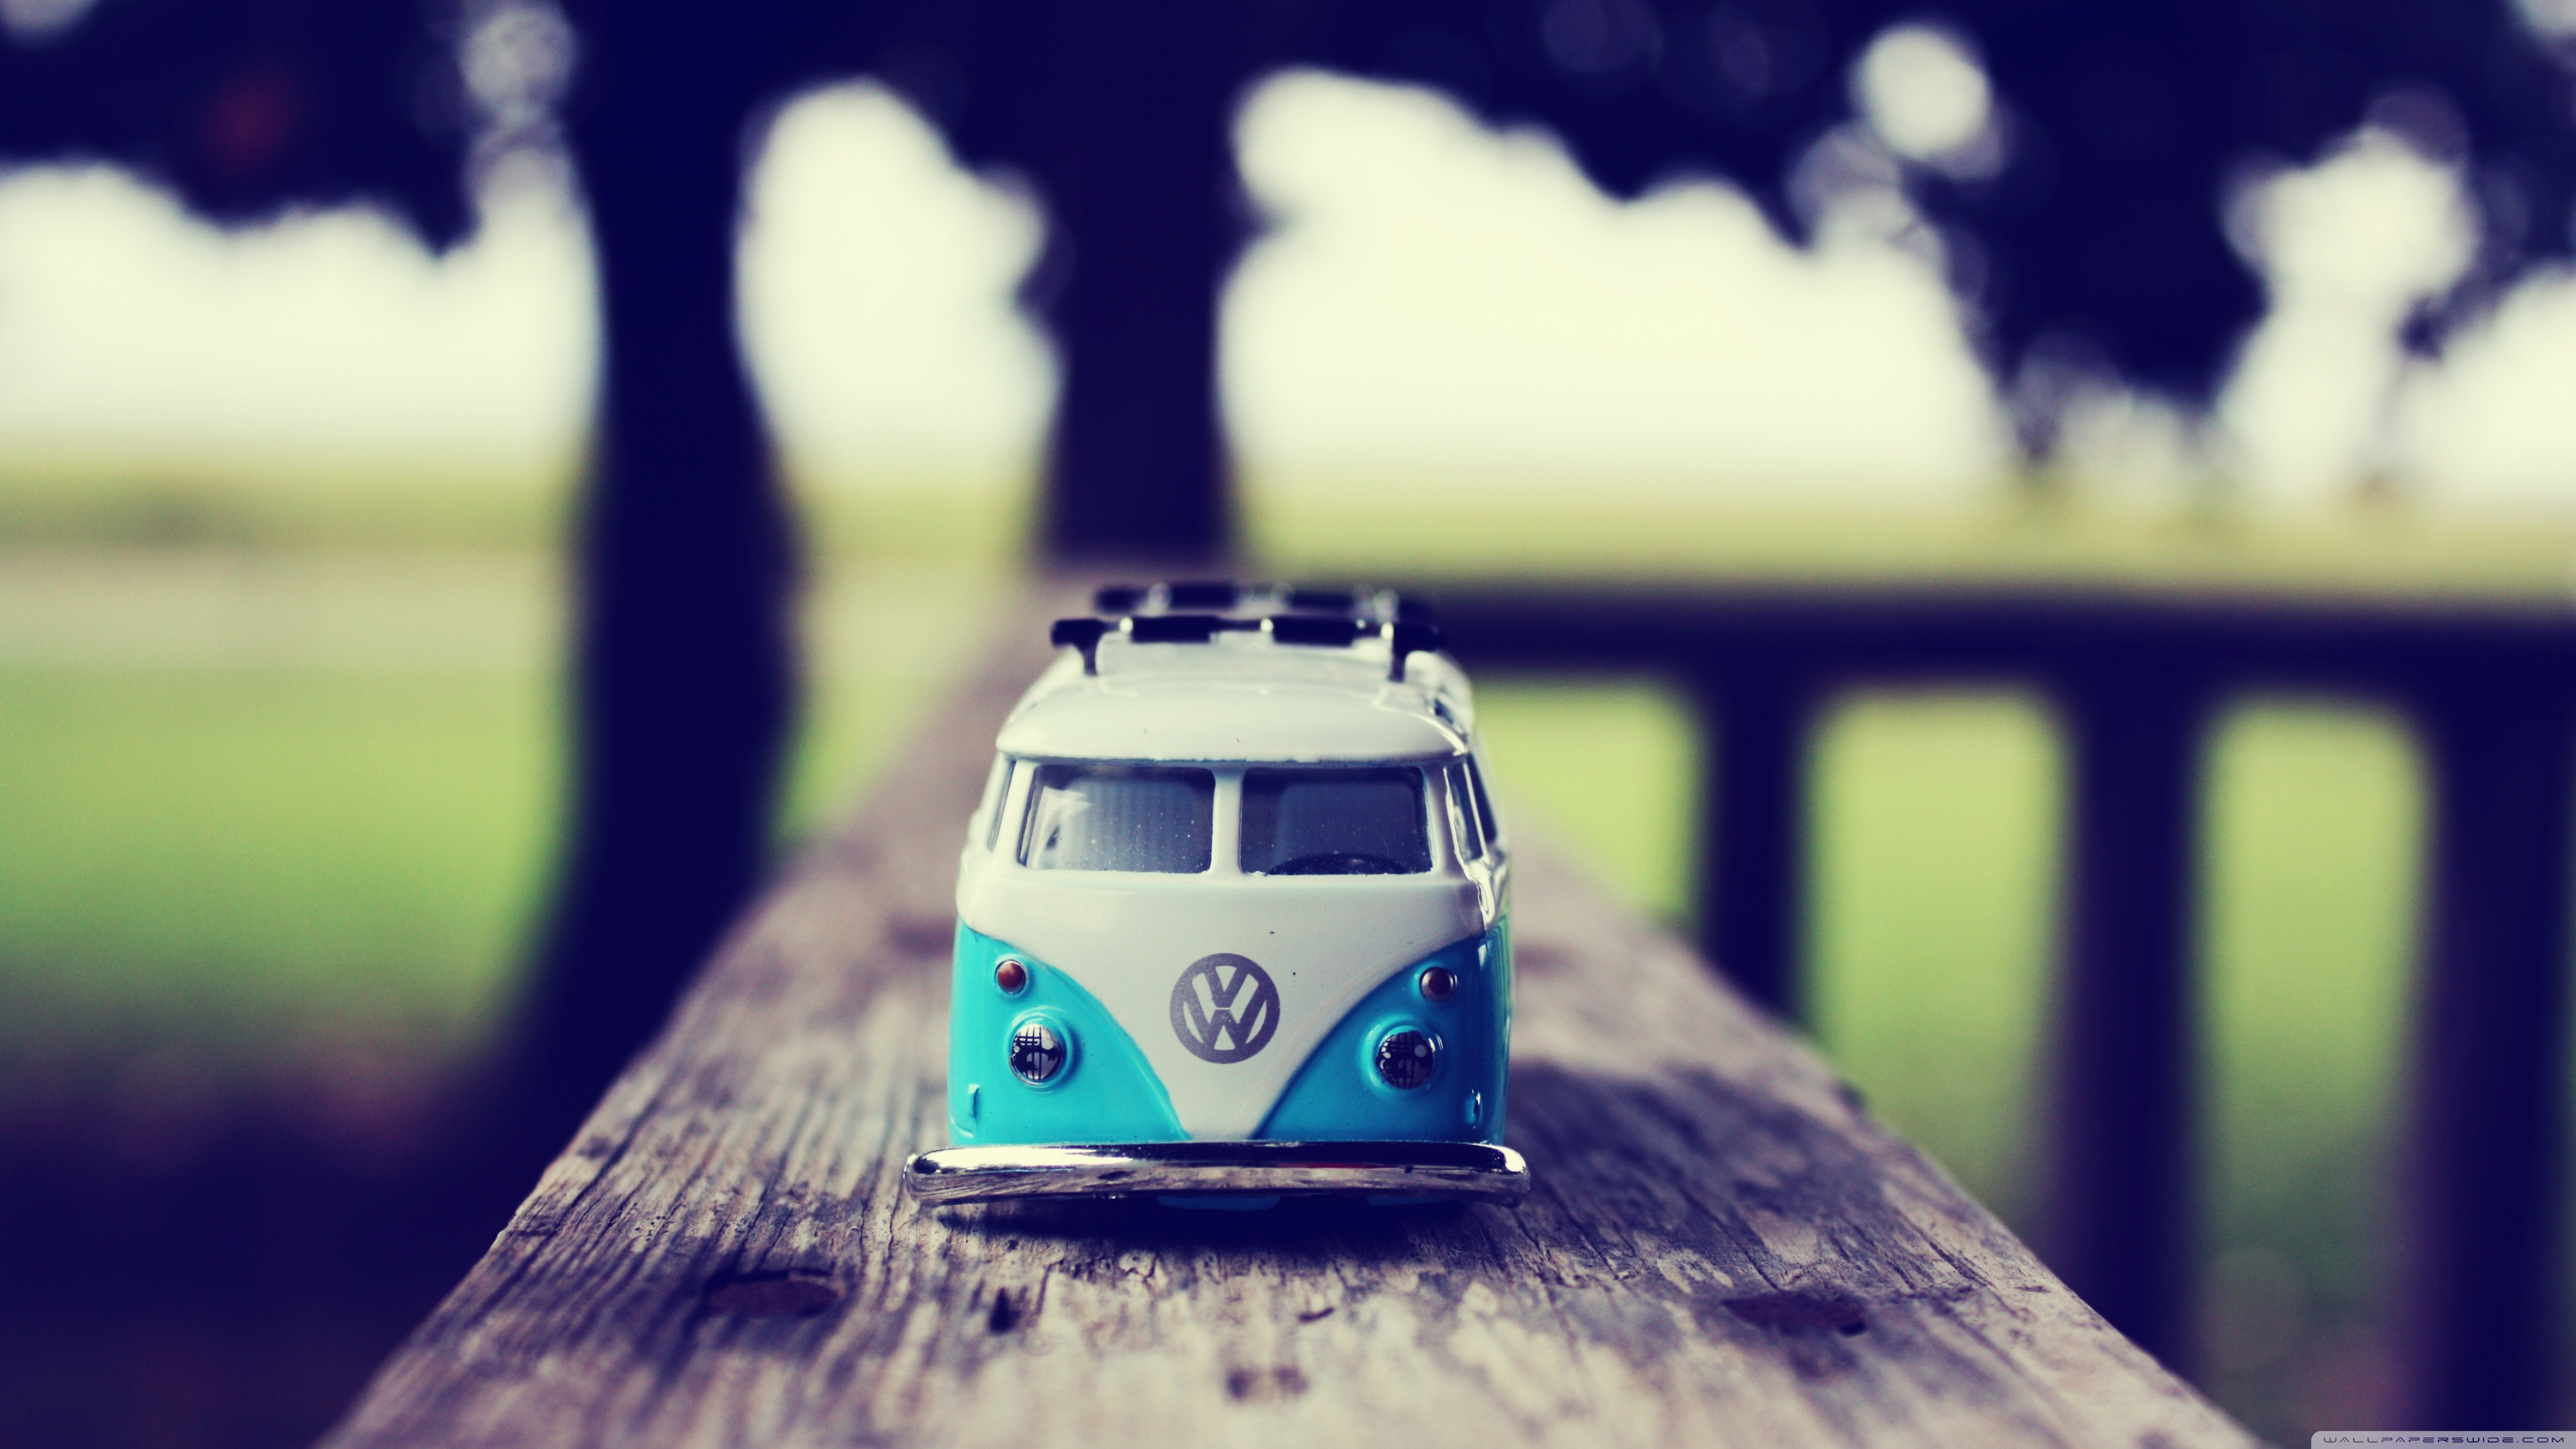 vw_love-wallpaper-3840x2160